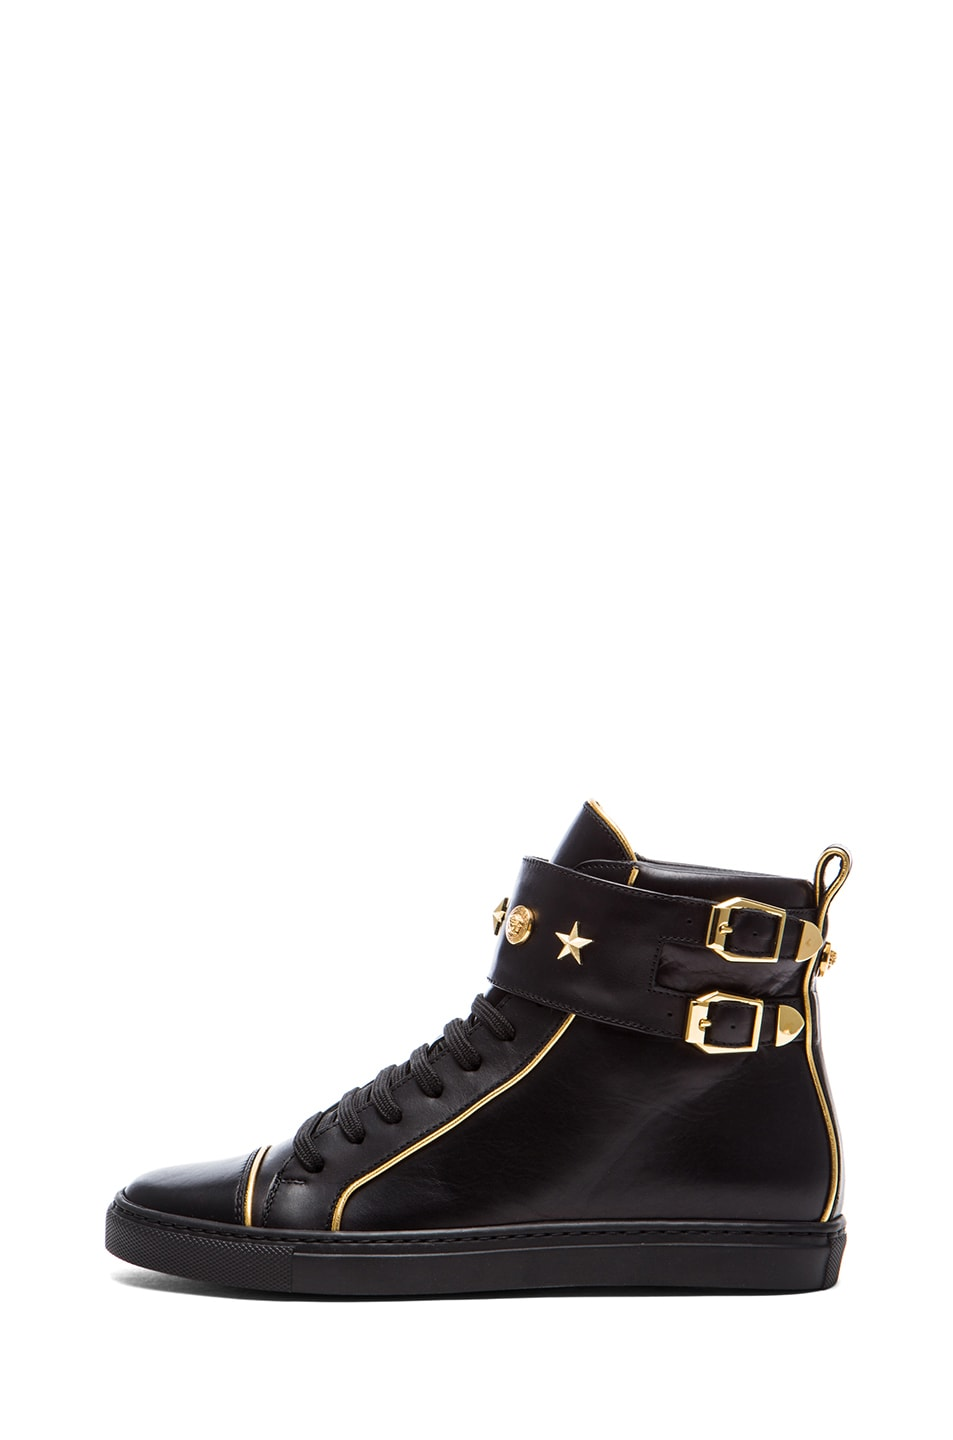 Image 1 of VERSACE Leather Gold Trim Sneakers in Black